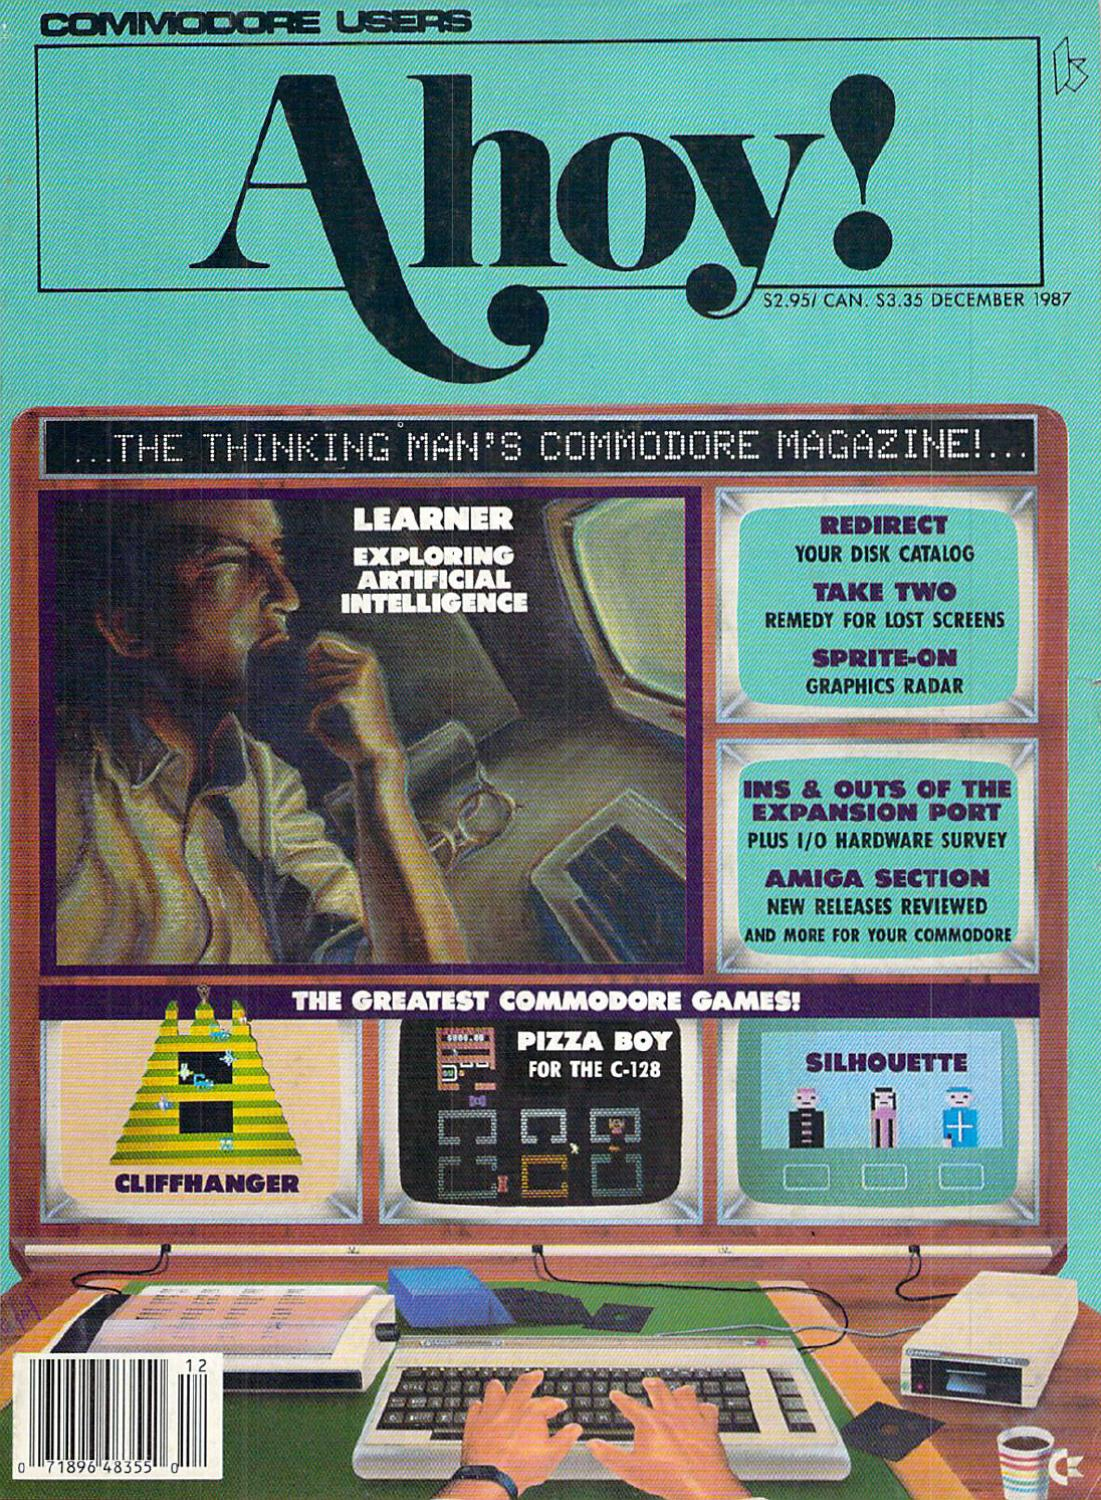 Ahoy_Issue_48_1987_Dec by Zetmoon - issuu